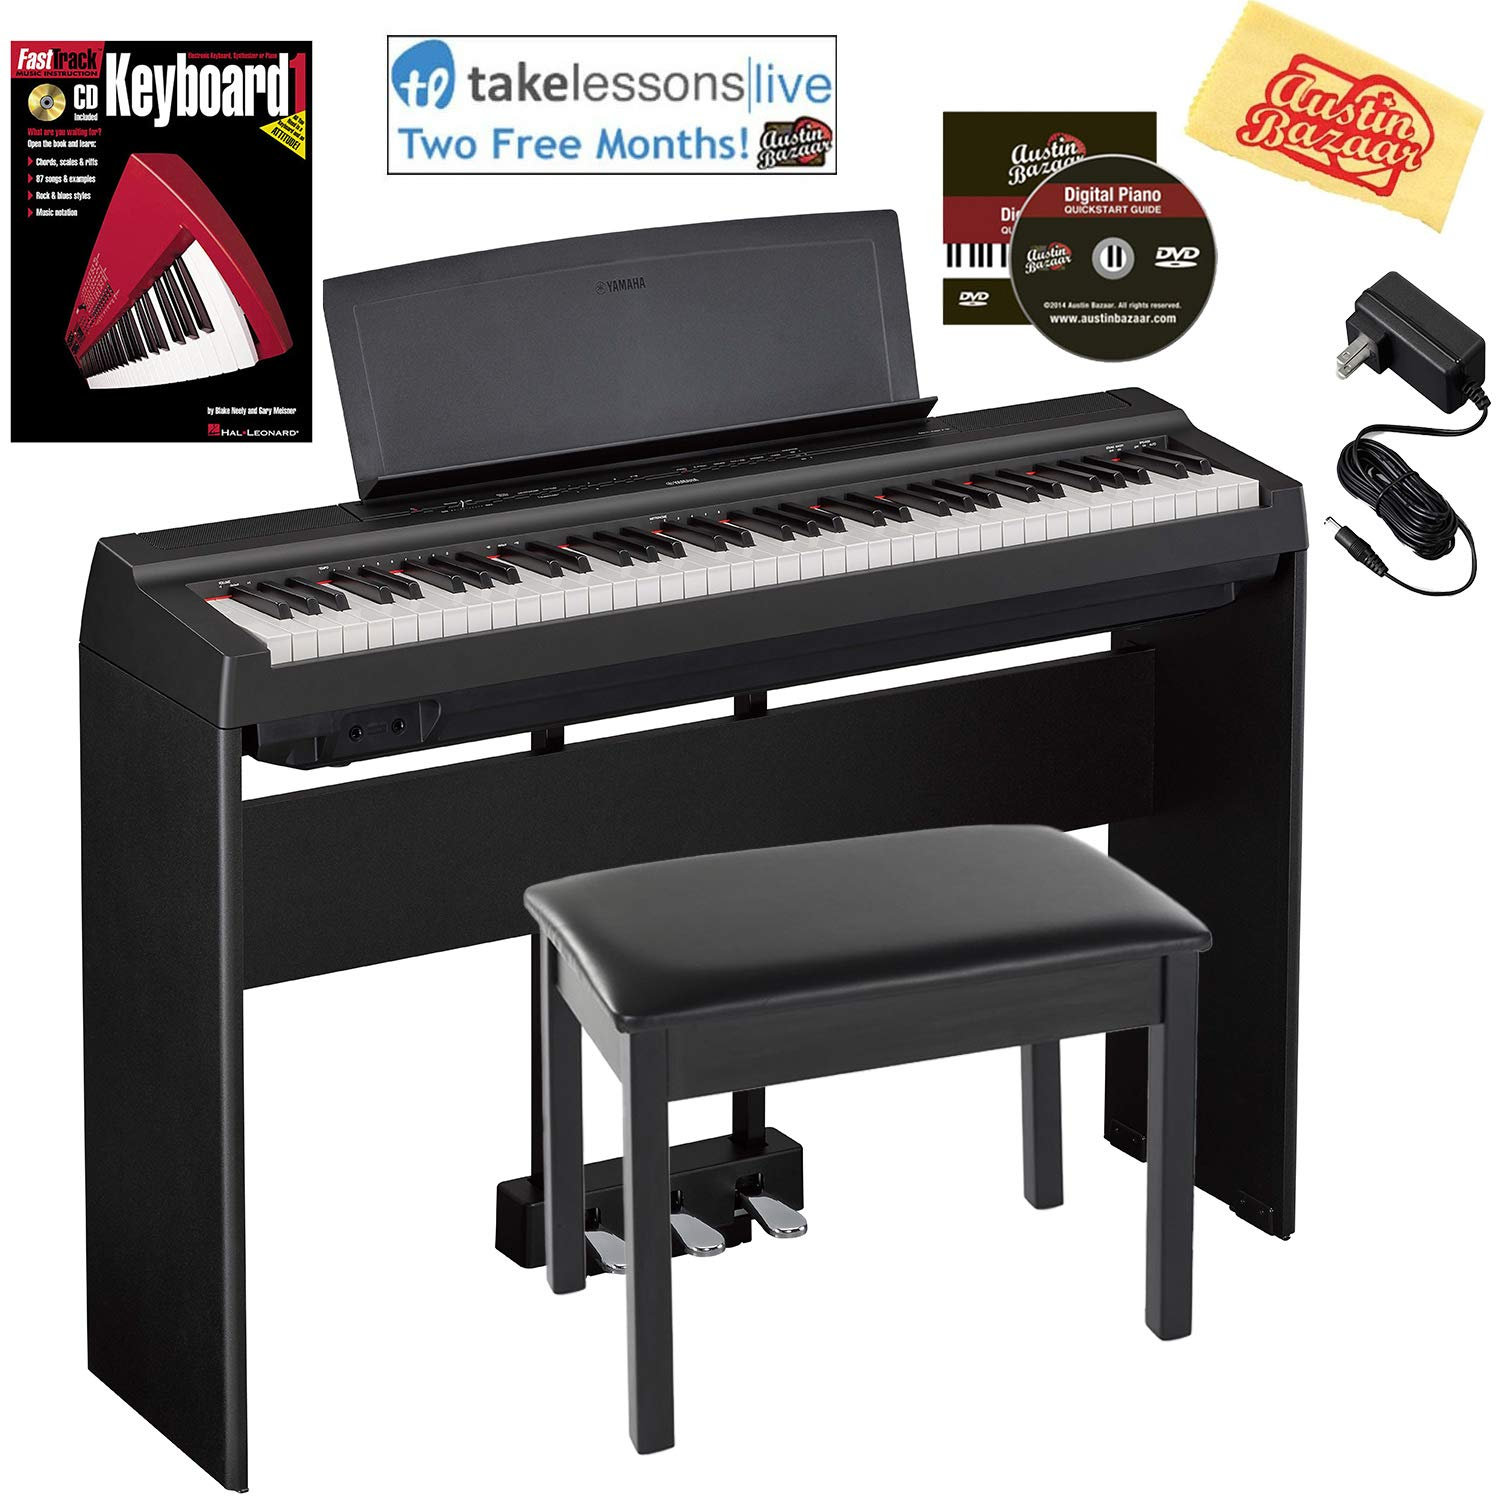 Yamaha P-121 73-Key Compact Digital Piano - Black Bundle with Yamaha L-121 Stand, LP-1 Pedal, Furniture Bench, Online Lessons, Instructional Book, Austin Bazaar Instructional DVD, and Polishing Cloth by YAMAHA